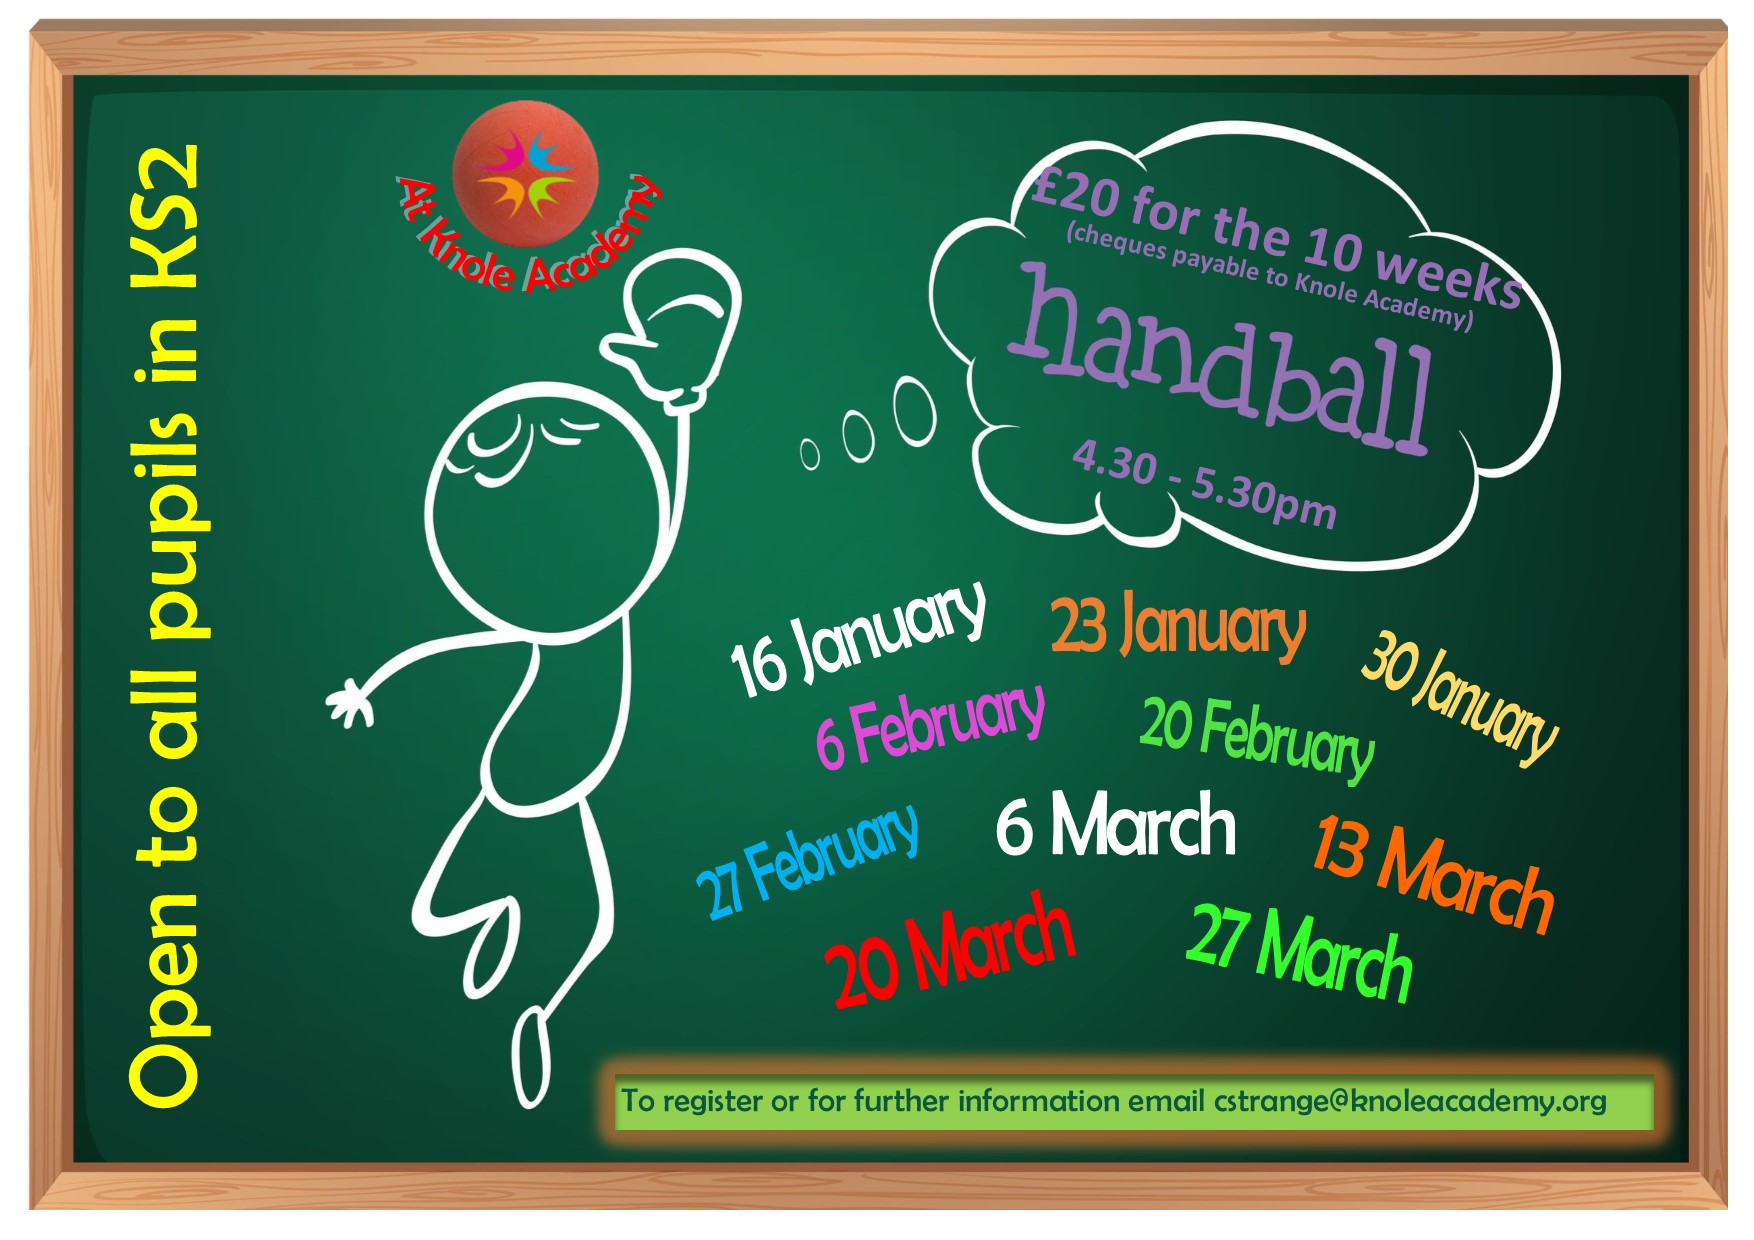 Poster for handball Term 3 & 4